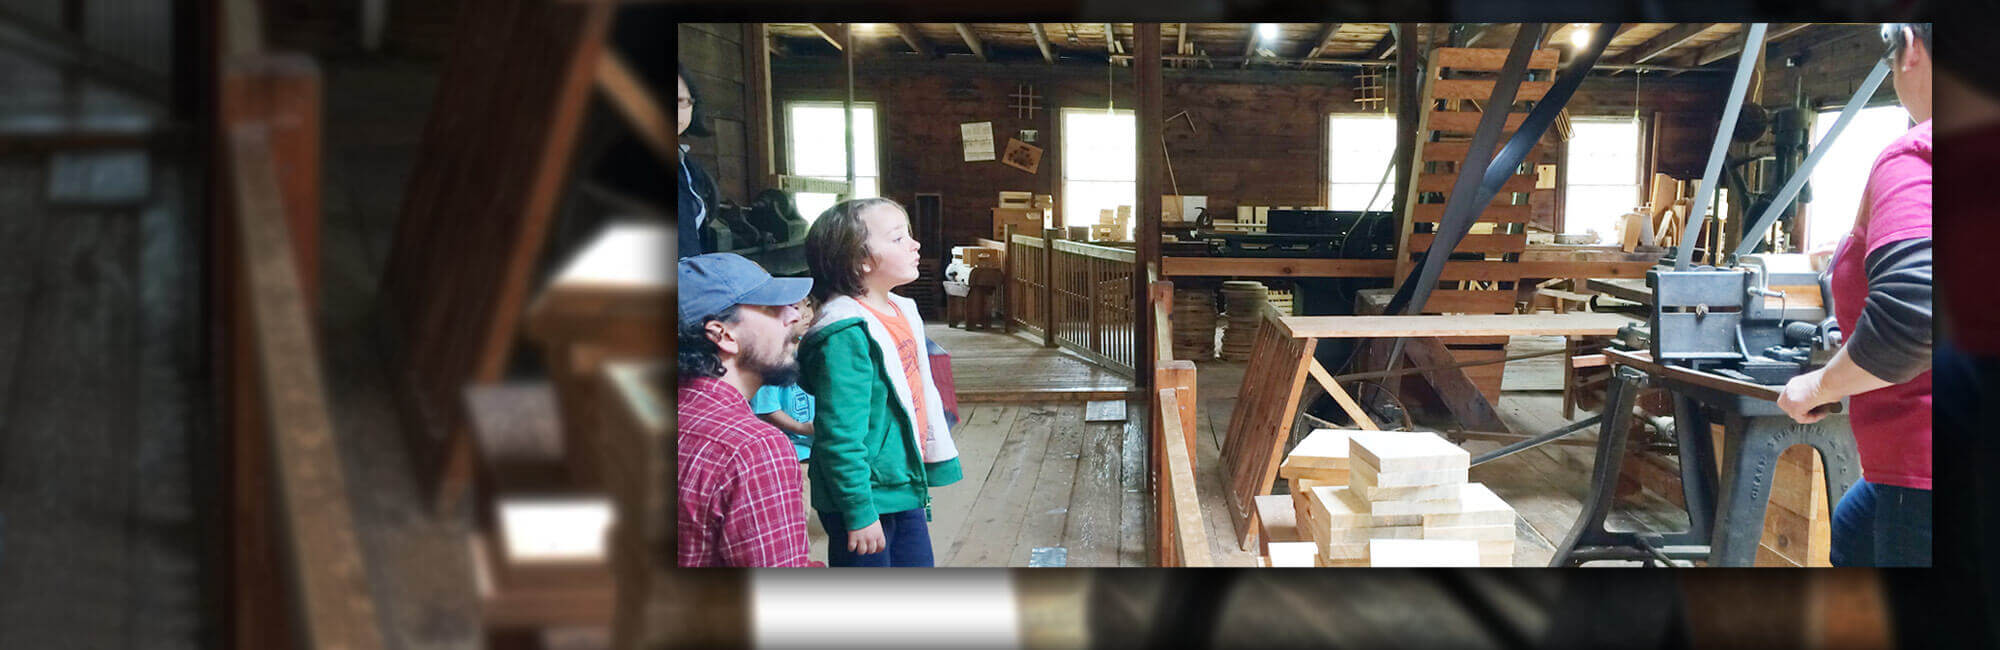 Hanford Mills – The Hanford Mills Museum features an authentic water